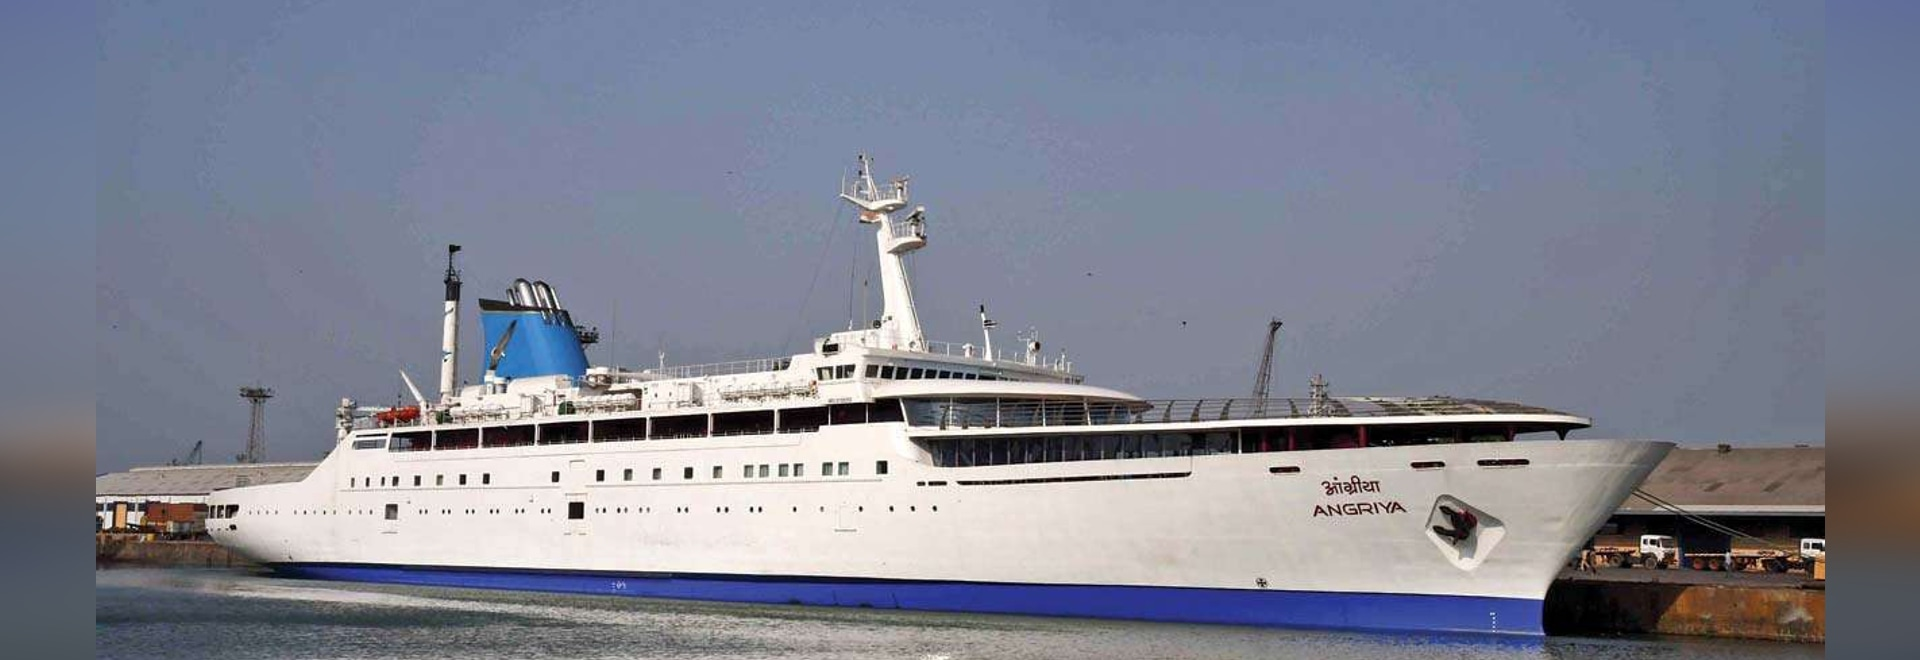 NEW PASSENGER SERVICE STARTED BY SEA EAGLE CRUISES